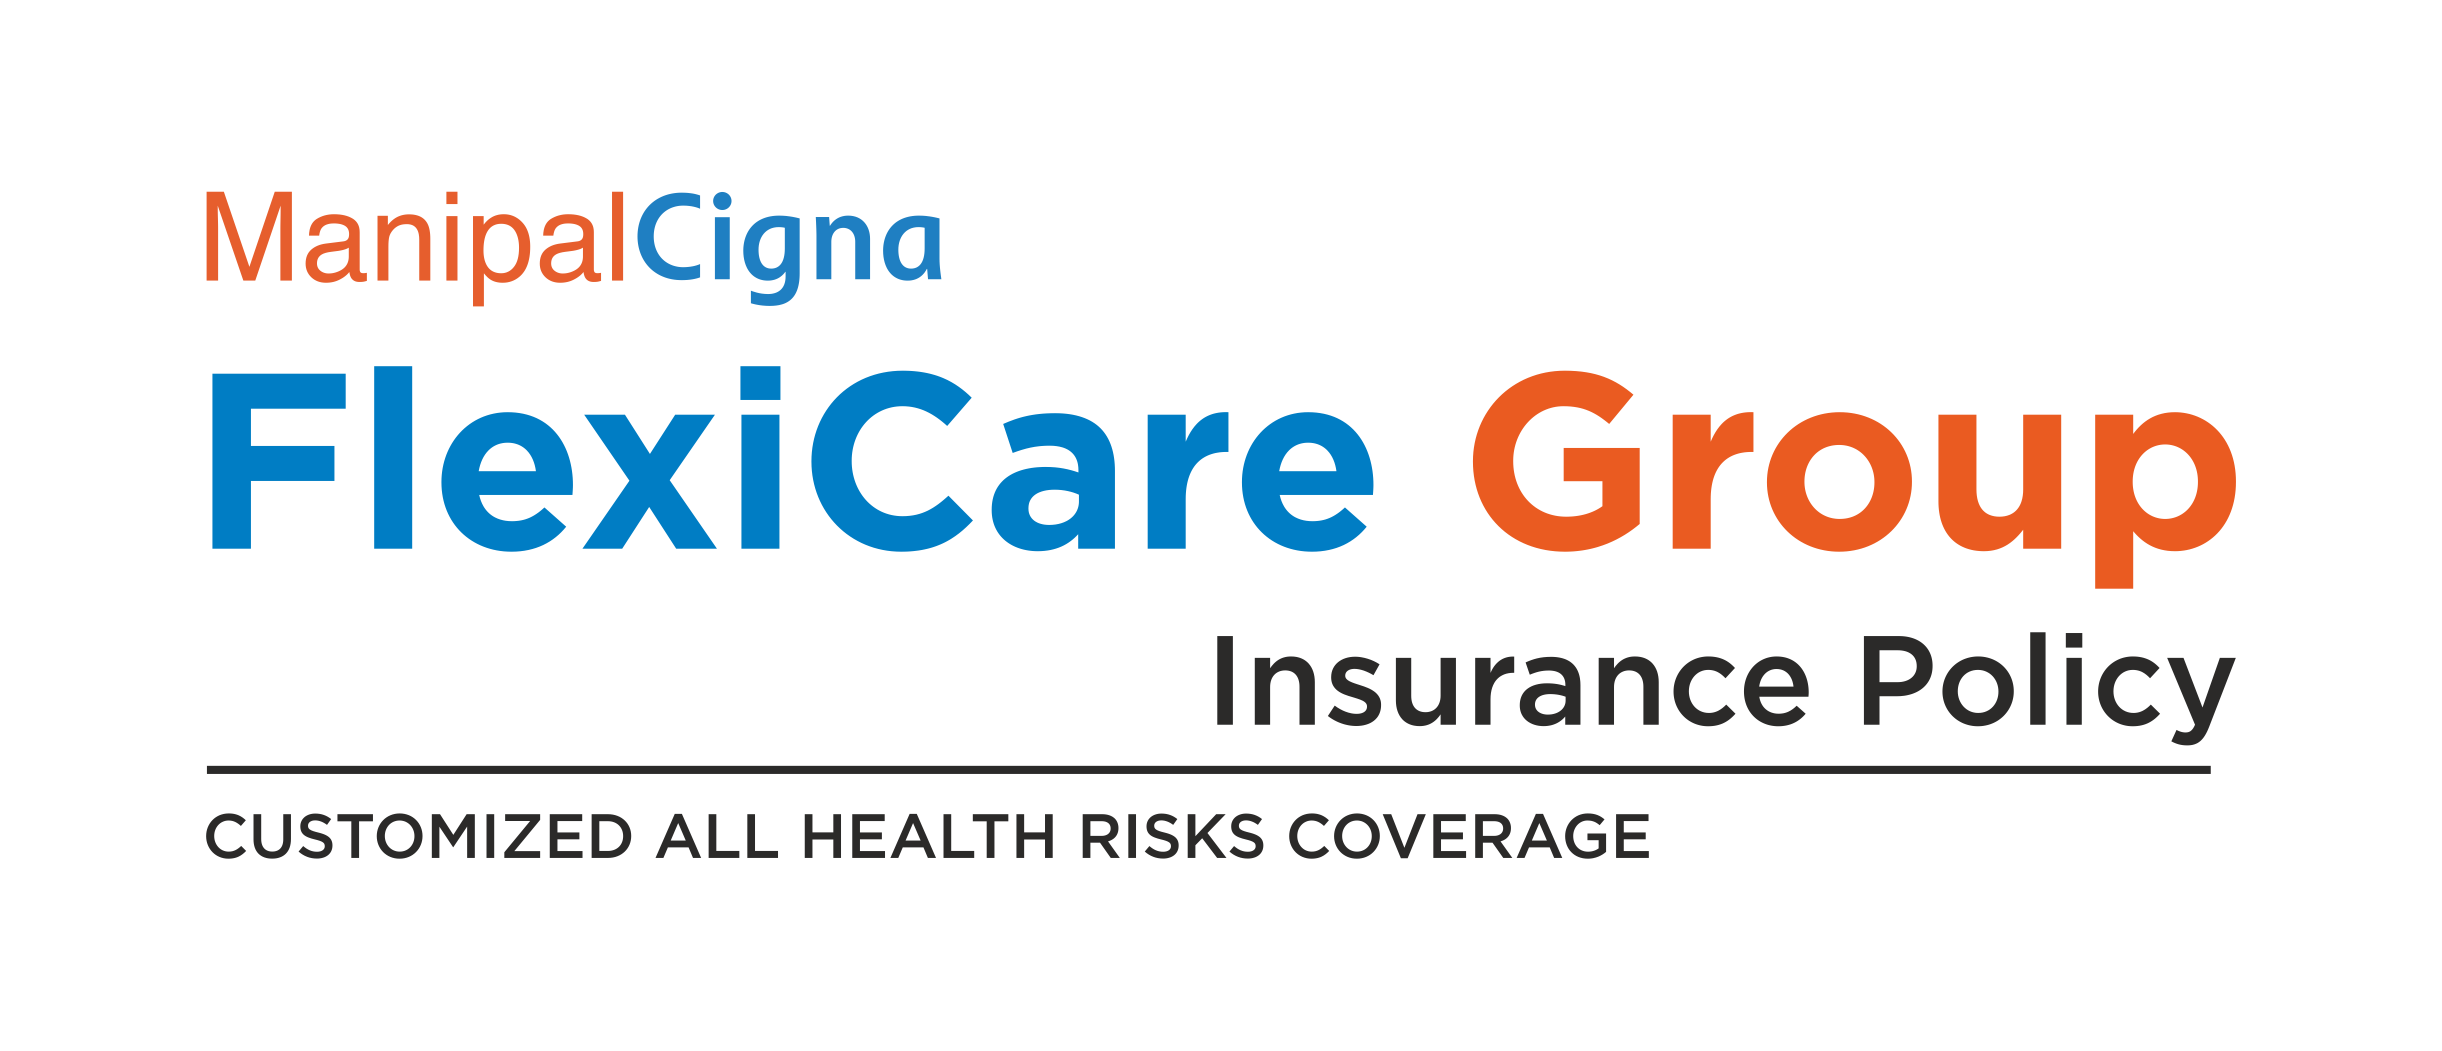 FlexiCare Group Insurance Policy